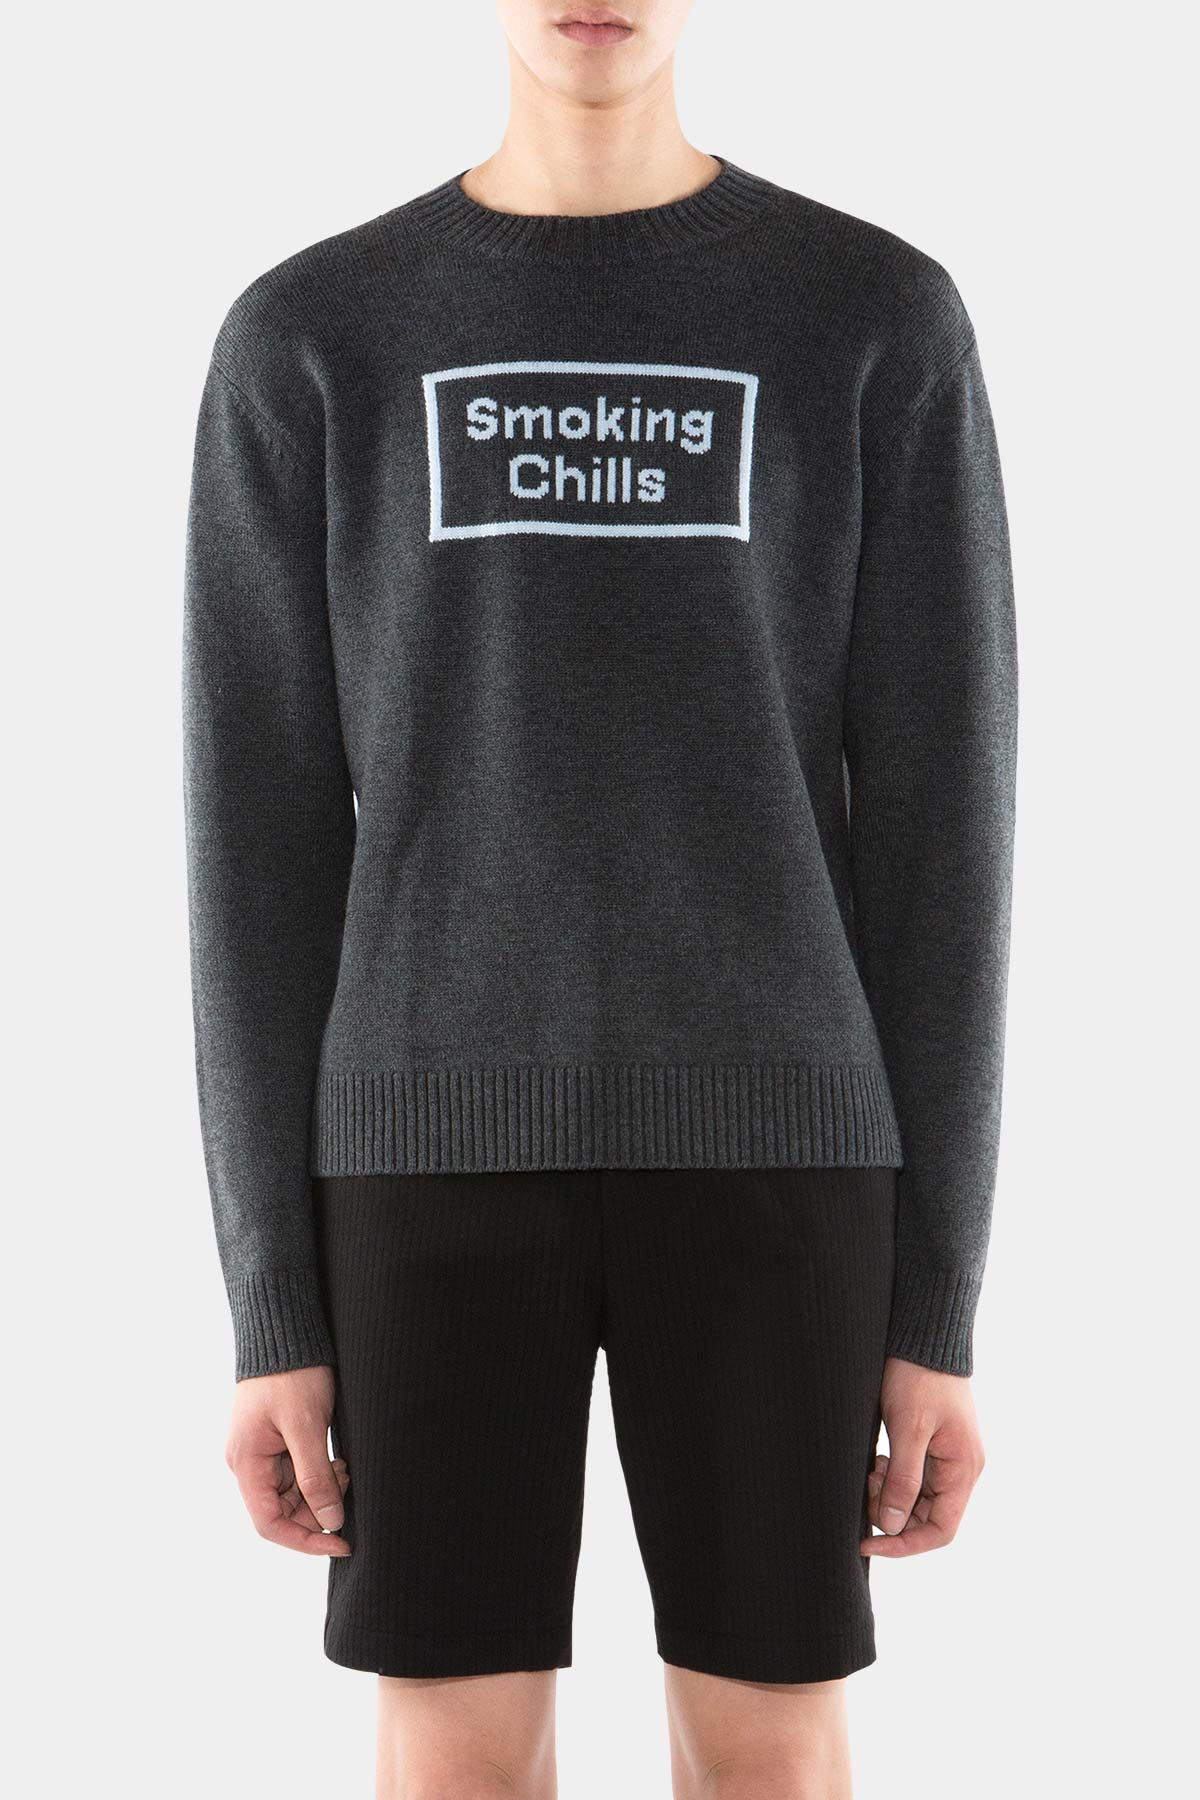 Smoking K̶i̶l̶l̶s̶ Chills Sweater